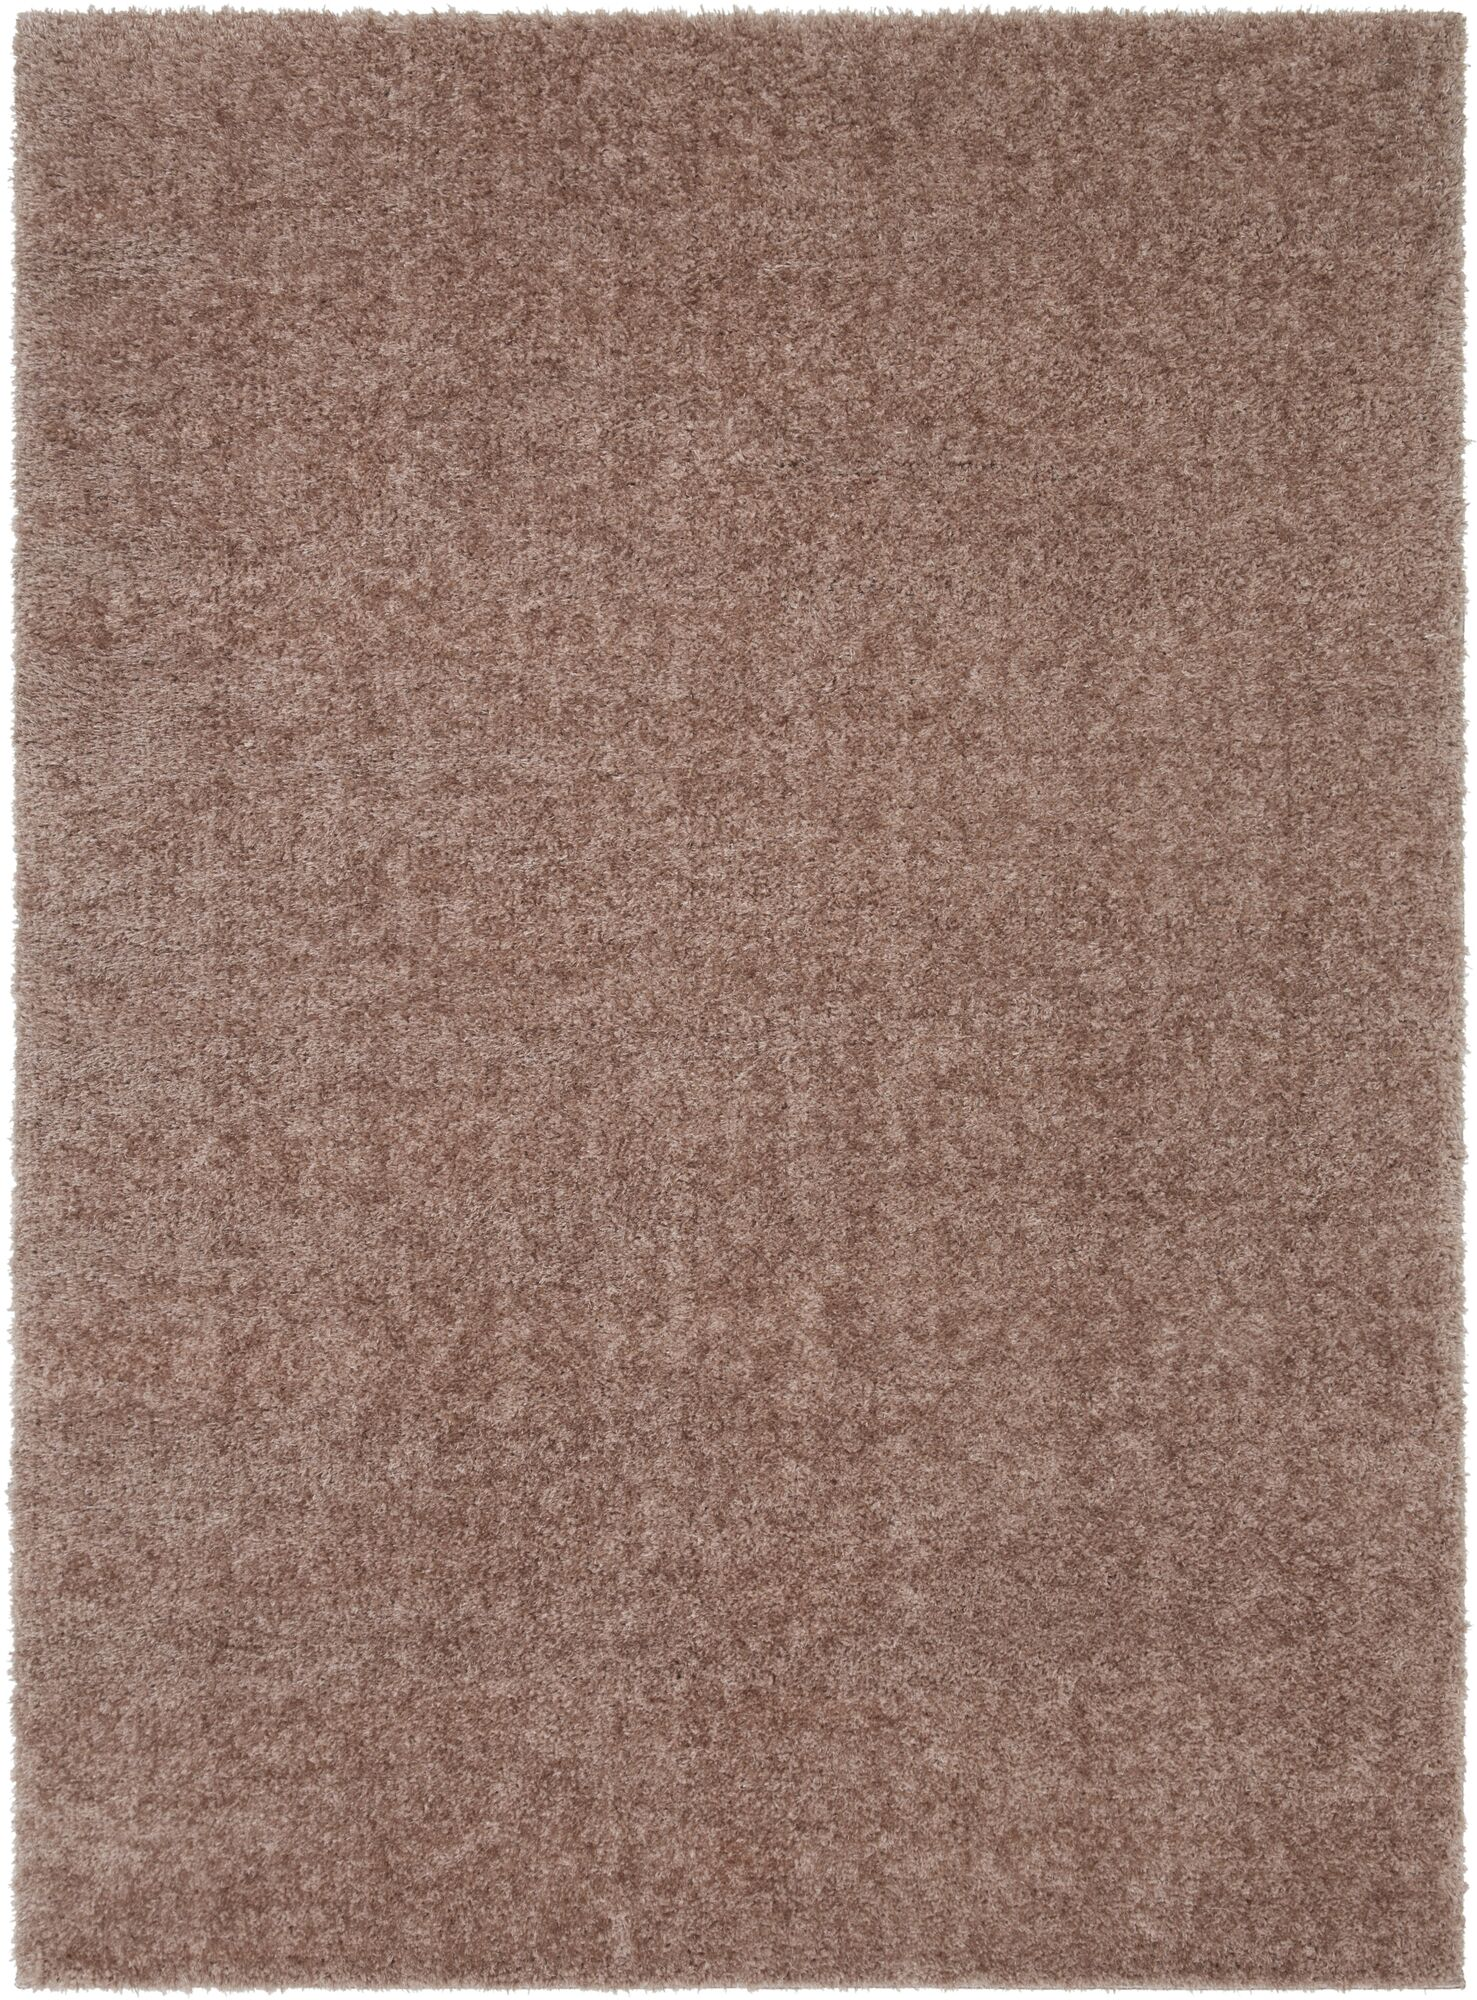 Carlos Shag Plush Camel Area Rug Rug Size: Rectangle 5'3